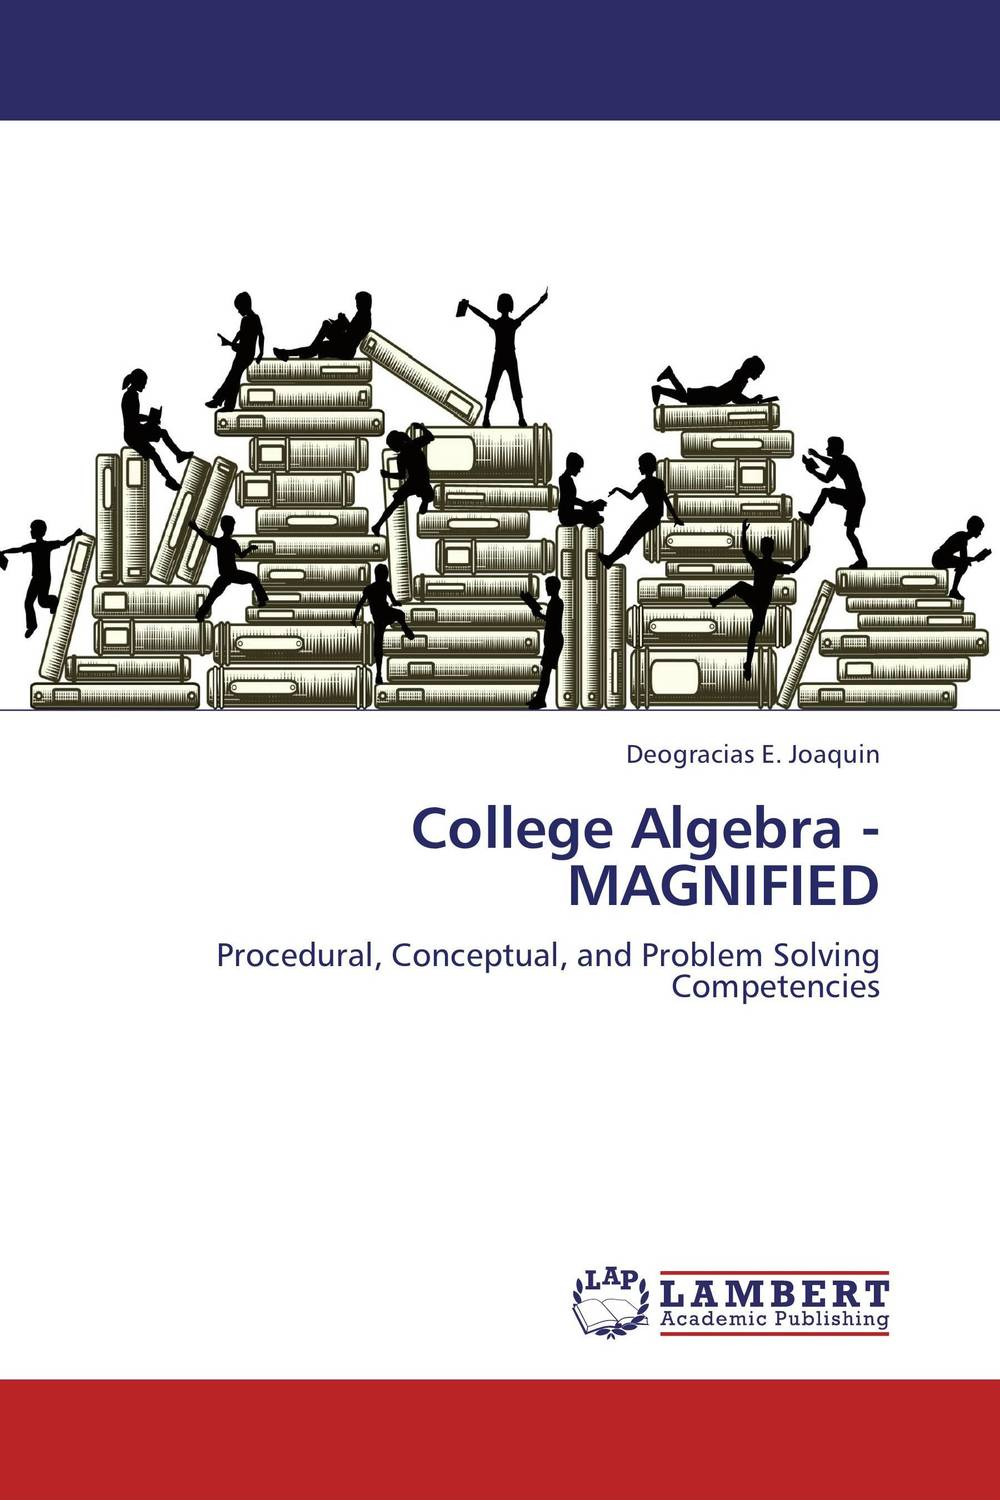 College Algebra - MAGNIFIED narrative evaluation for a college mathematics foundations course